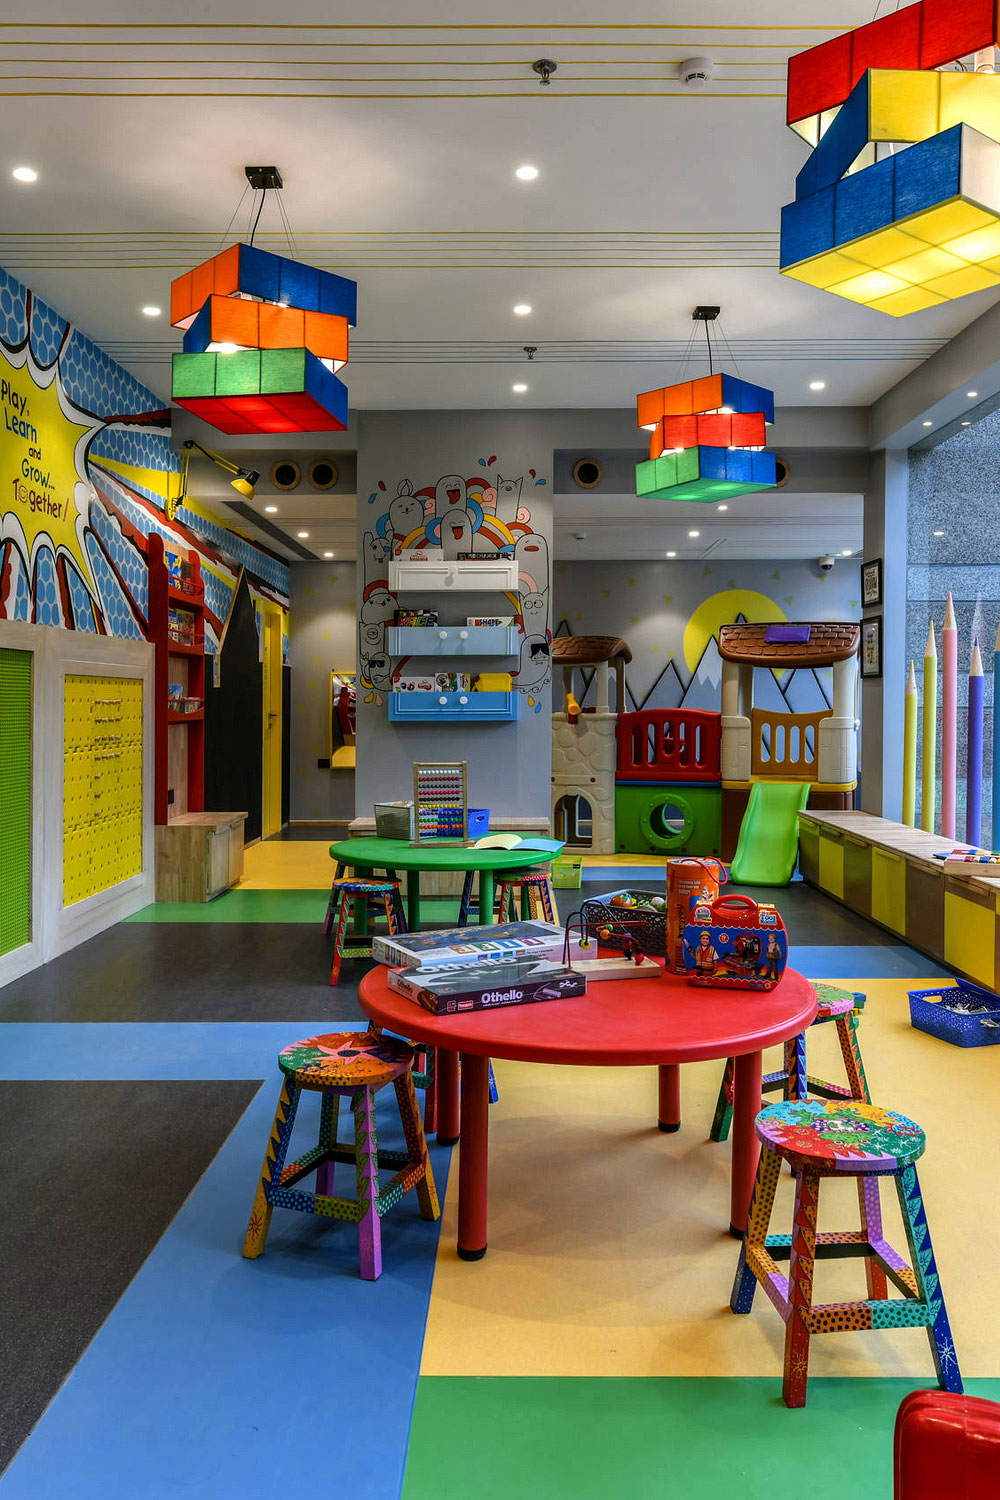 62 Kids Game Room Lets Play Stunning Space For Your Kids